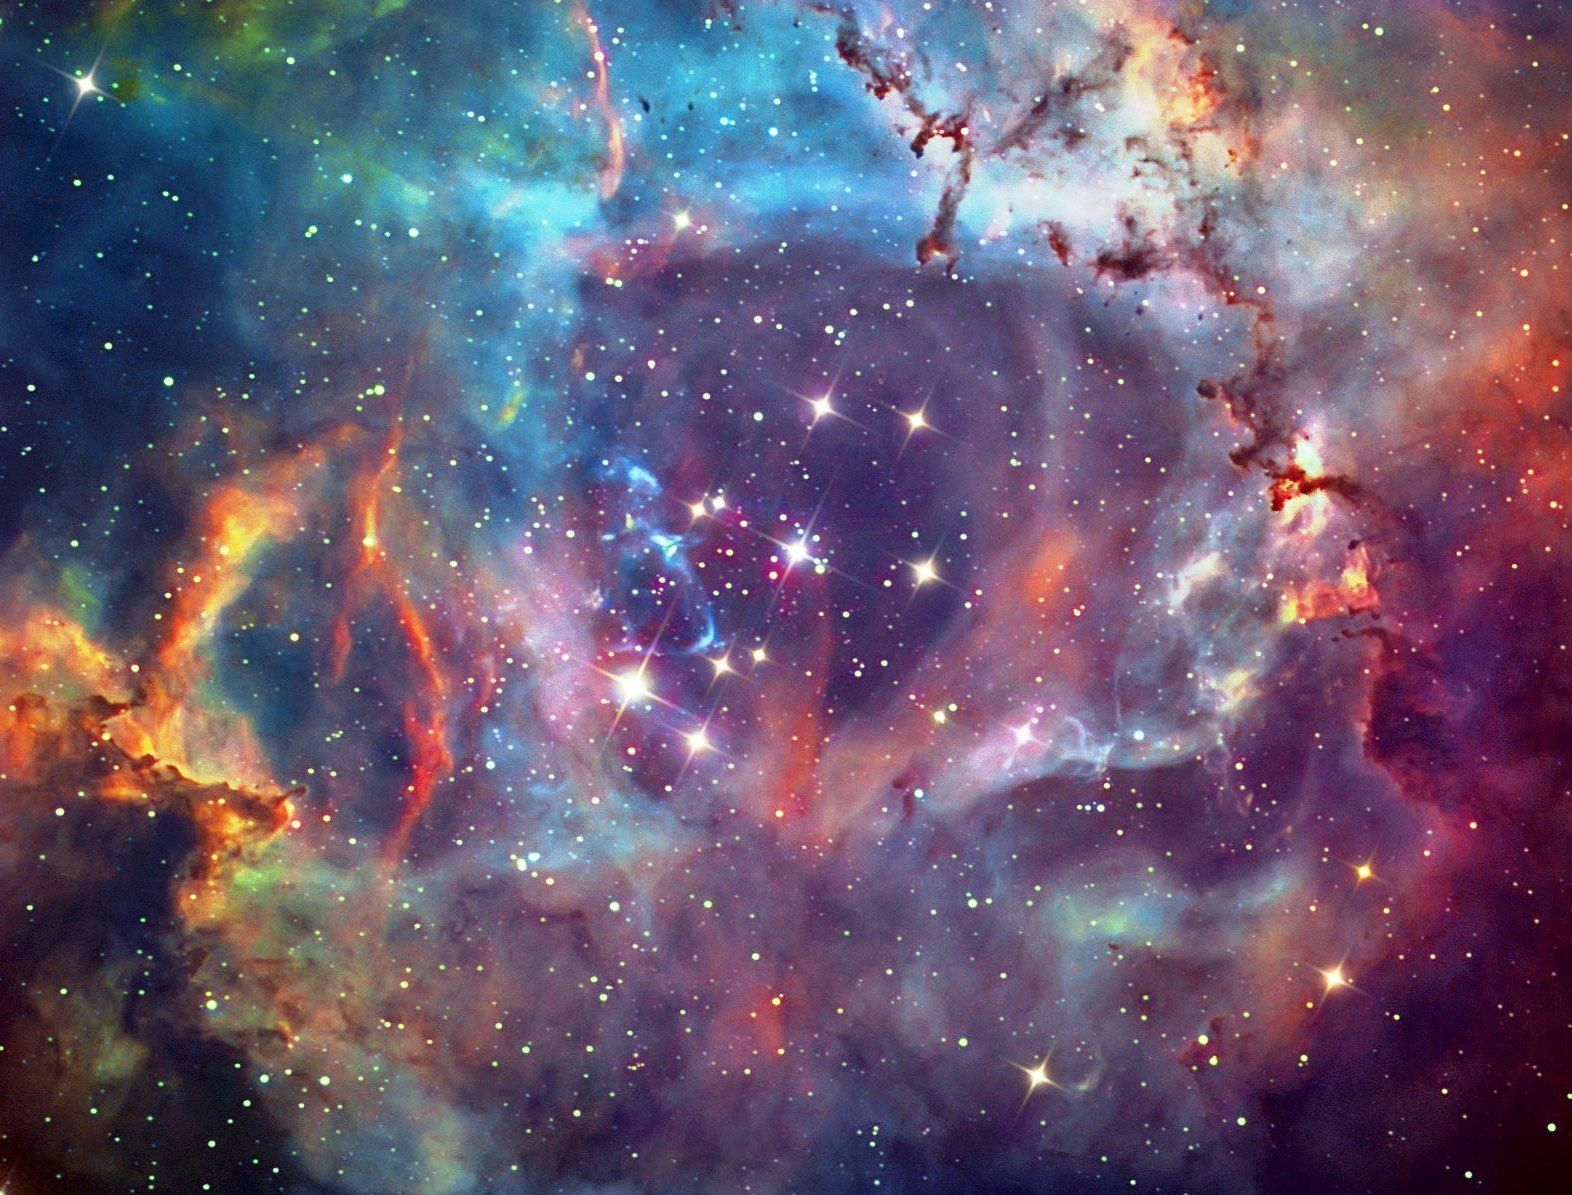 Image for Coolest Galaxy Wallpaper HD 33 Backgrounds wfz